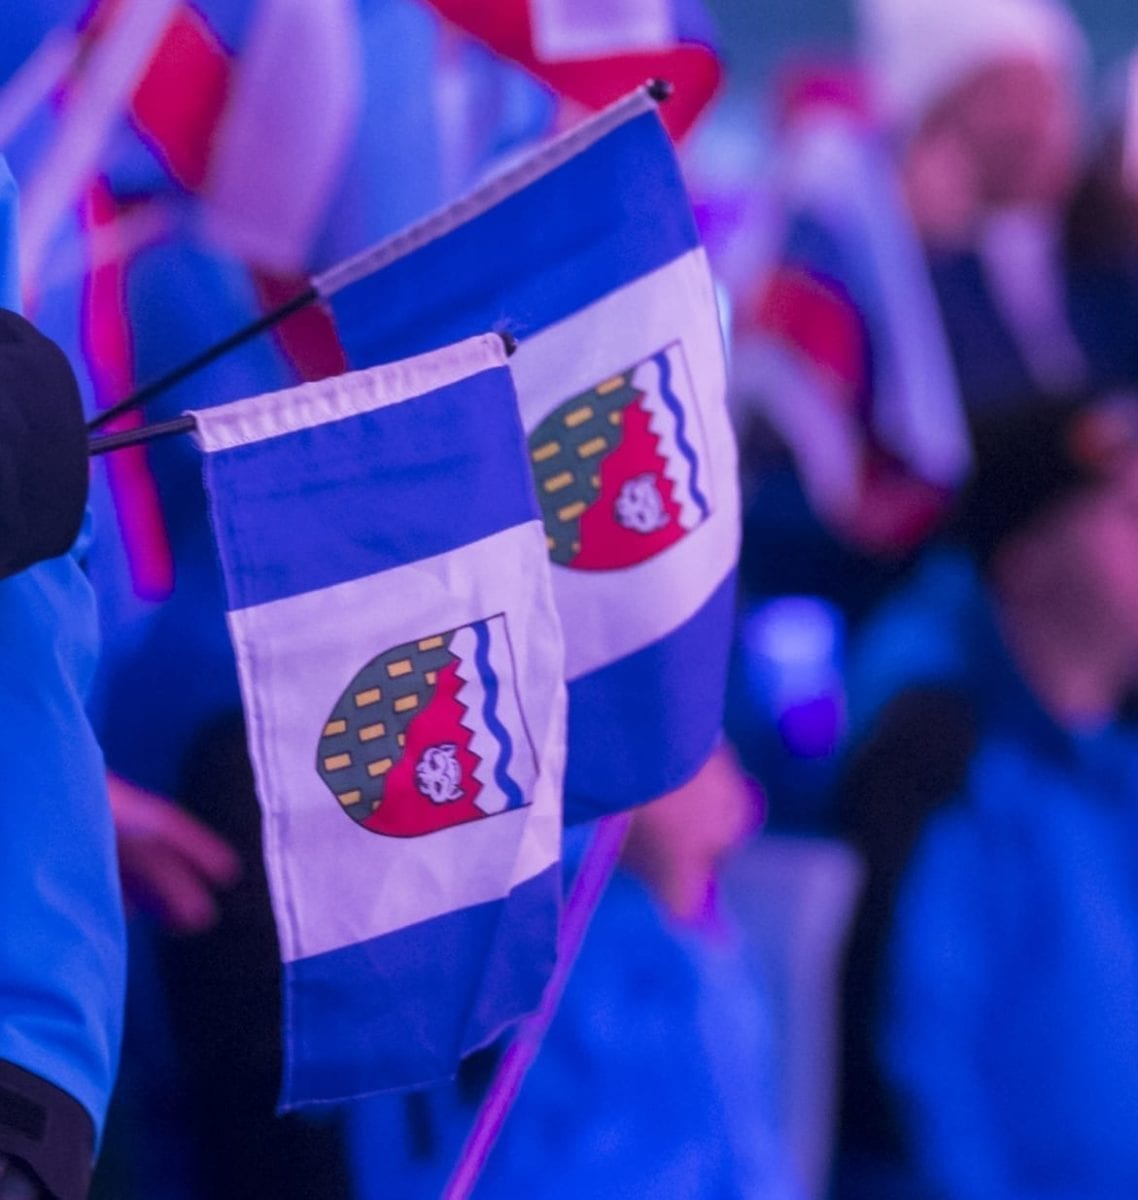 A couple of NWT flags hang out at the opening ceremony of the 2018 Arctic Winter Games in Hay River. One thing the 2018 Arctic Winter Games didn't have to worry about was the threat of Coronavirus (COVID-19), something the host society for the 2020 Arctic Winter Games has to contend with. photo courtesy of Thorsten Gohl